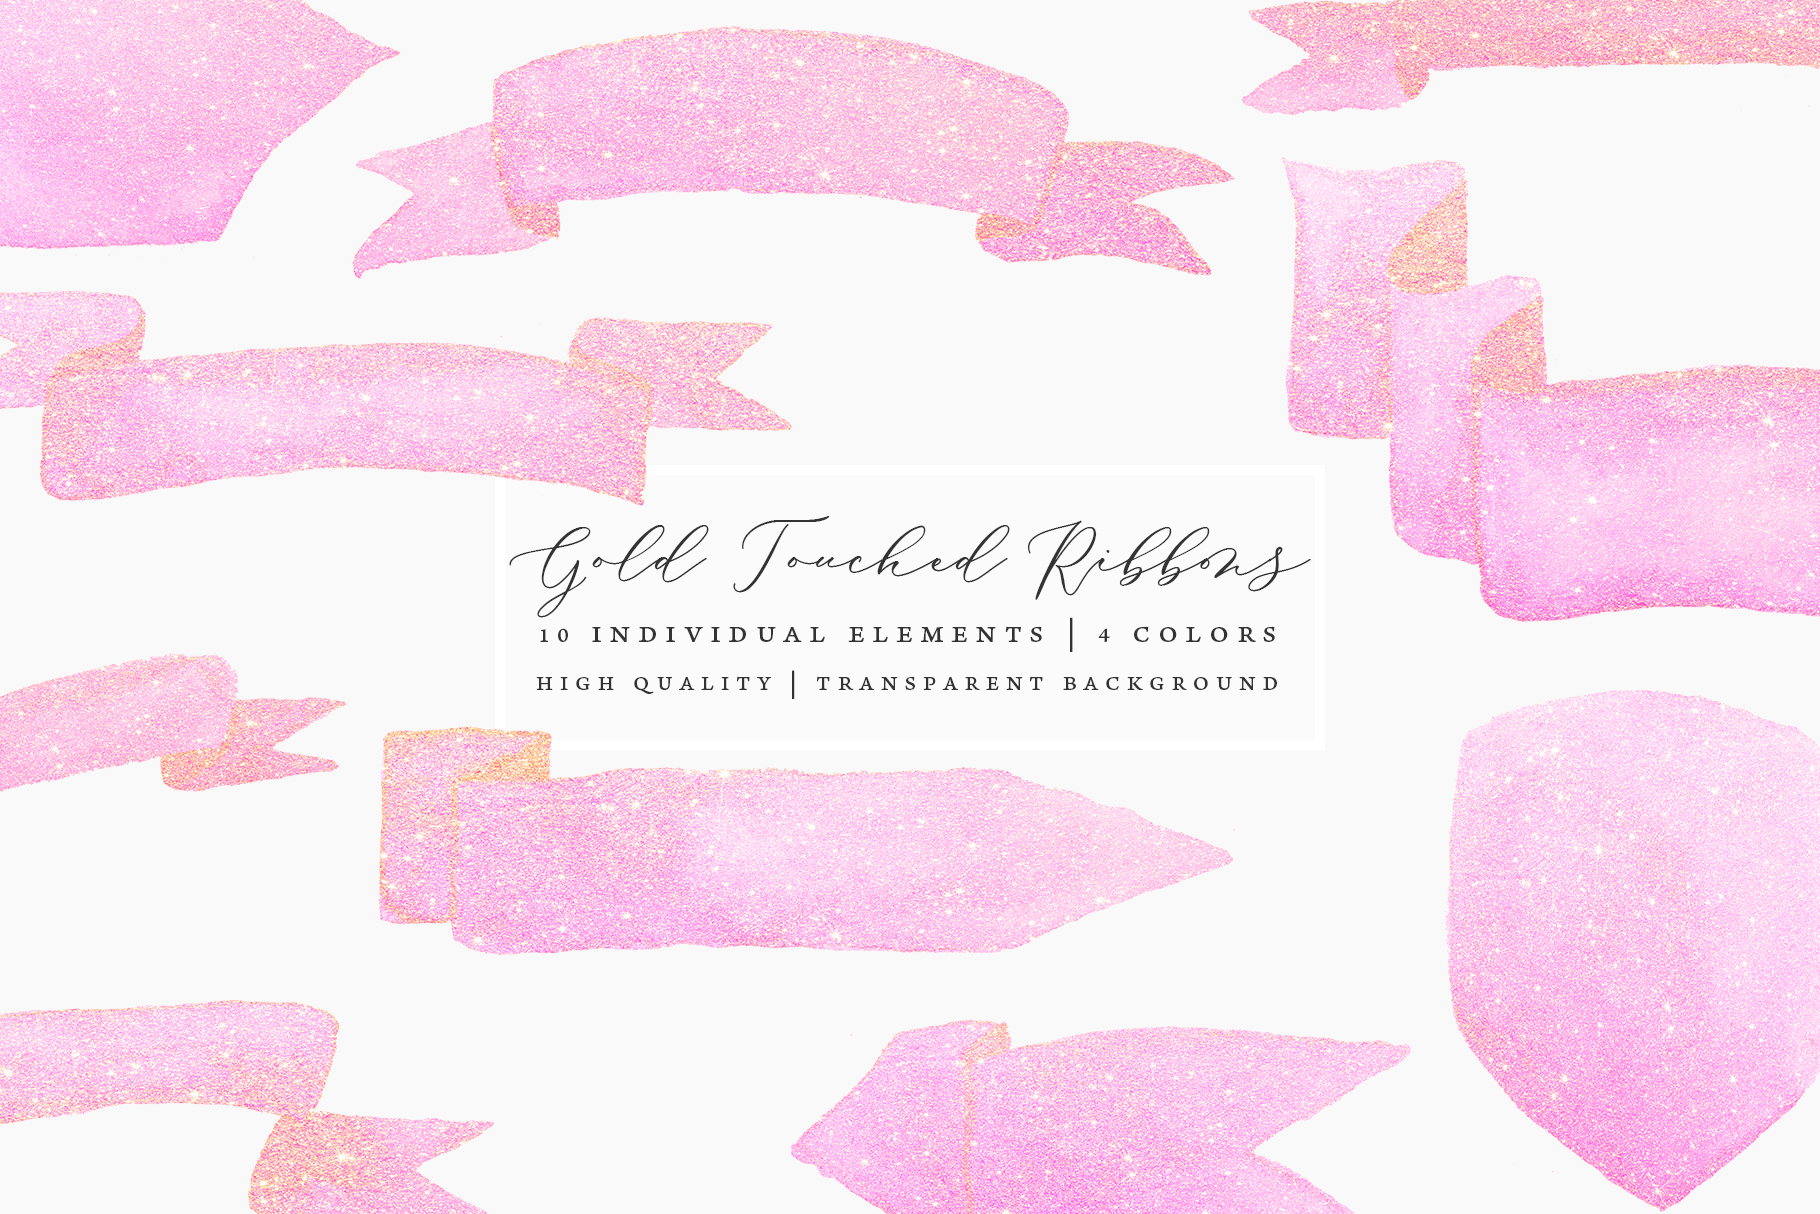 Gold Touched Ribbons - Blue, Pink, Gold example image 5